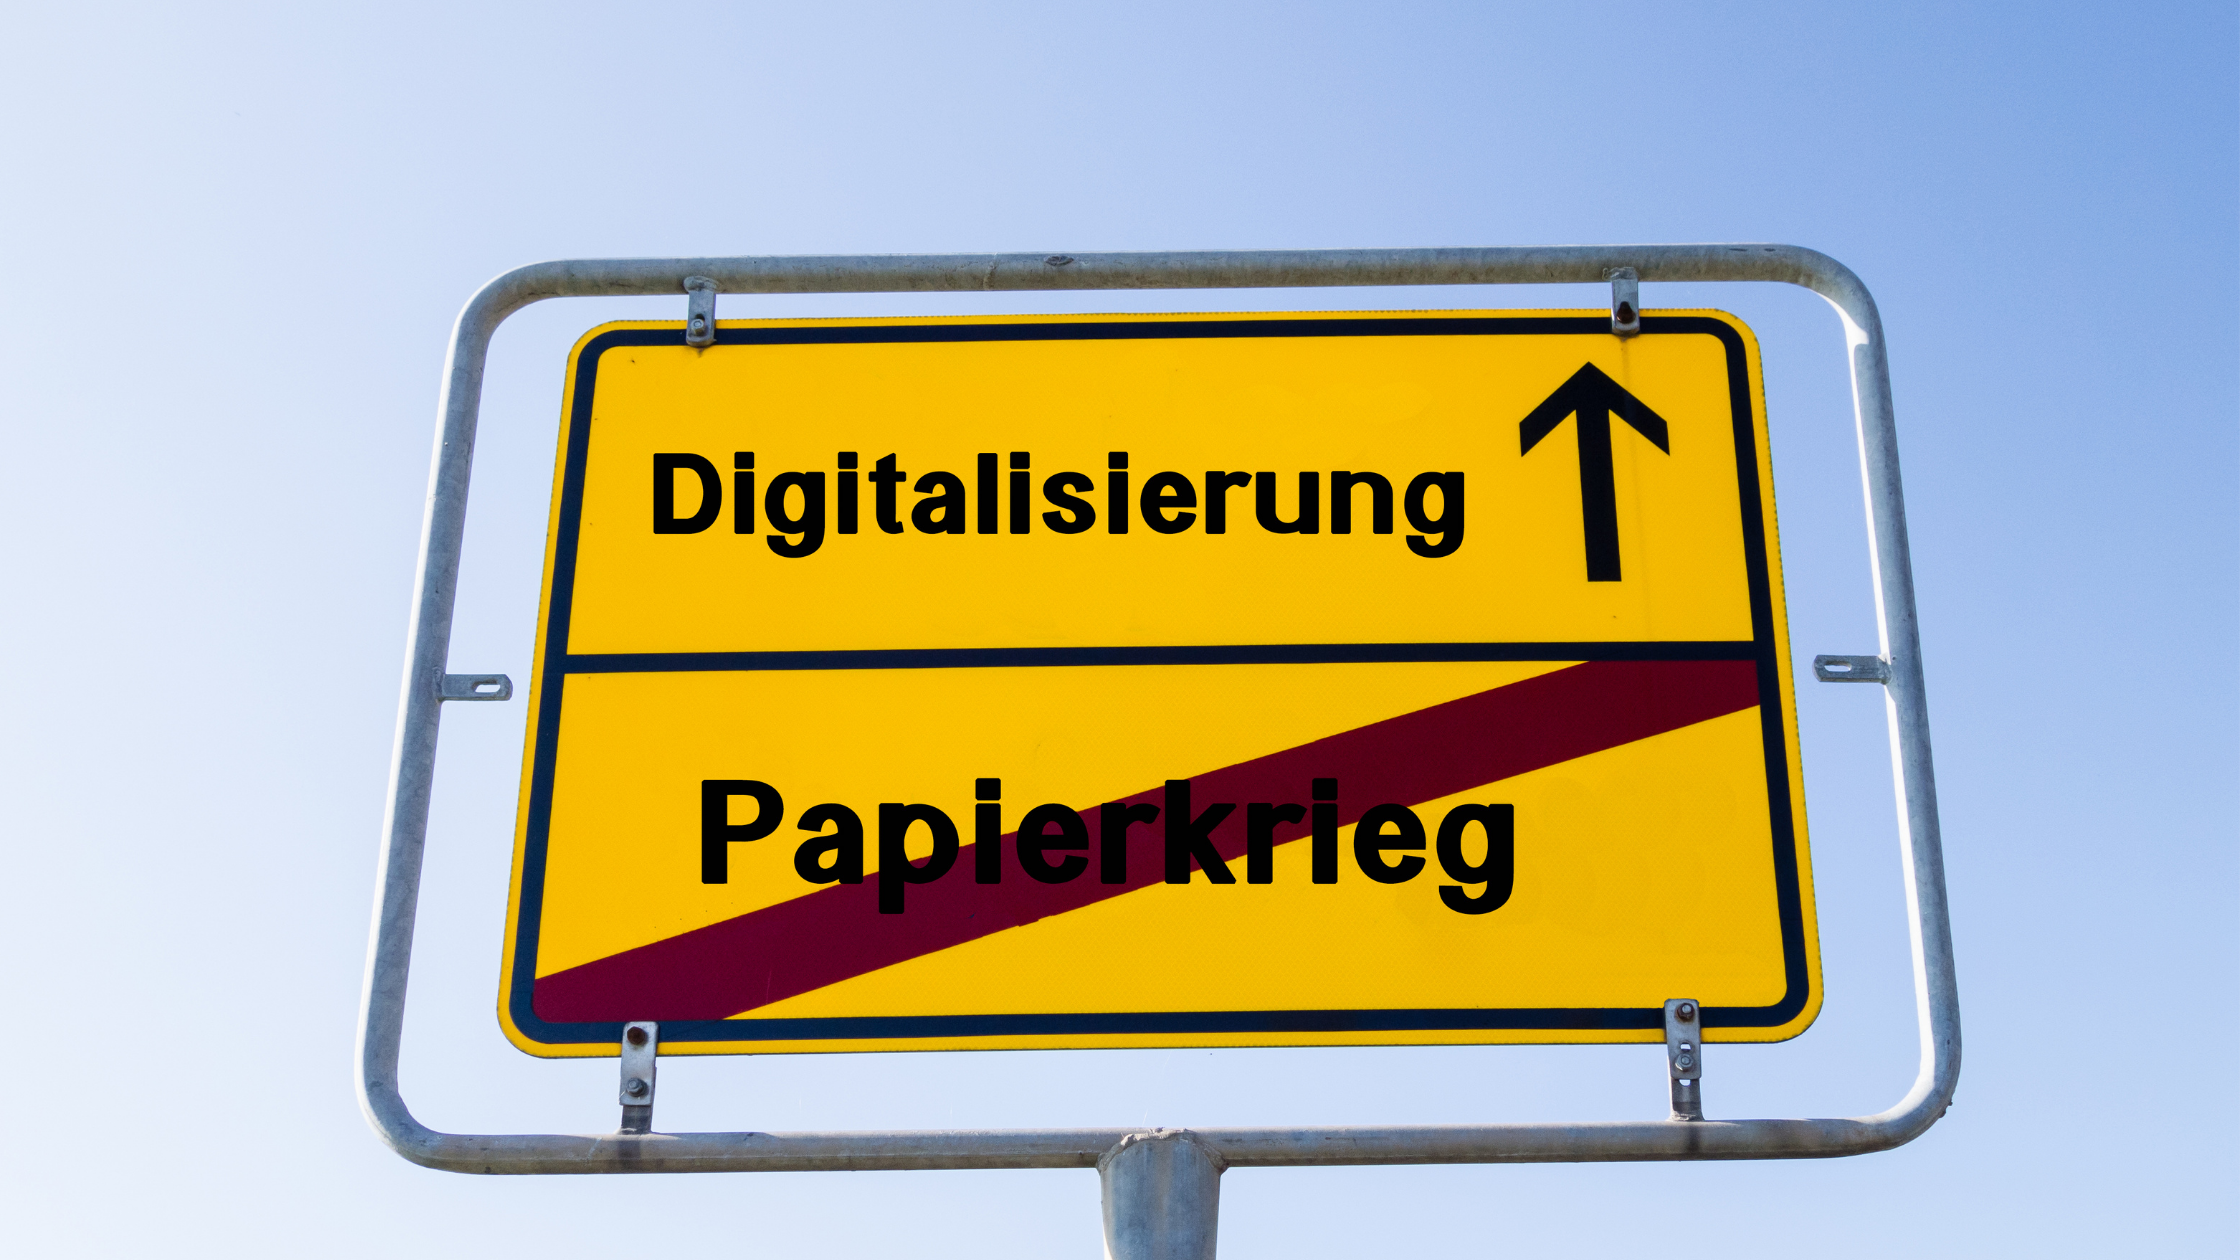 Moving from a paper-based system to a digital system